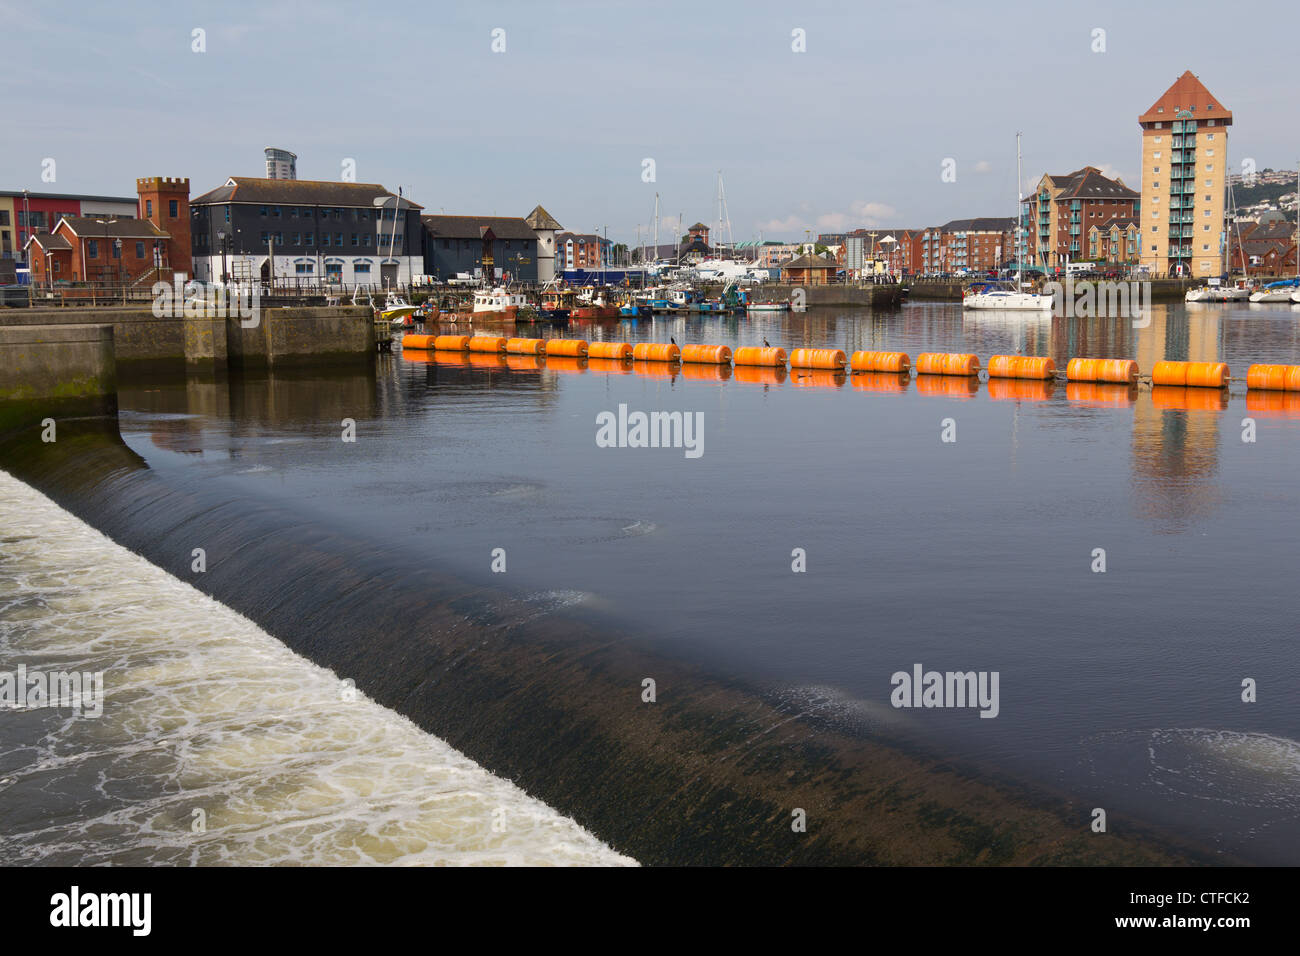 Orange barrage stopping boats from exiting Swansea Marina via a weir - Stock Image